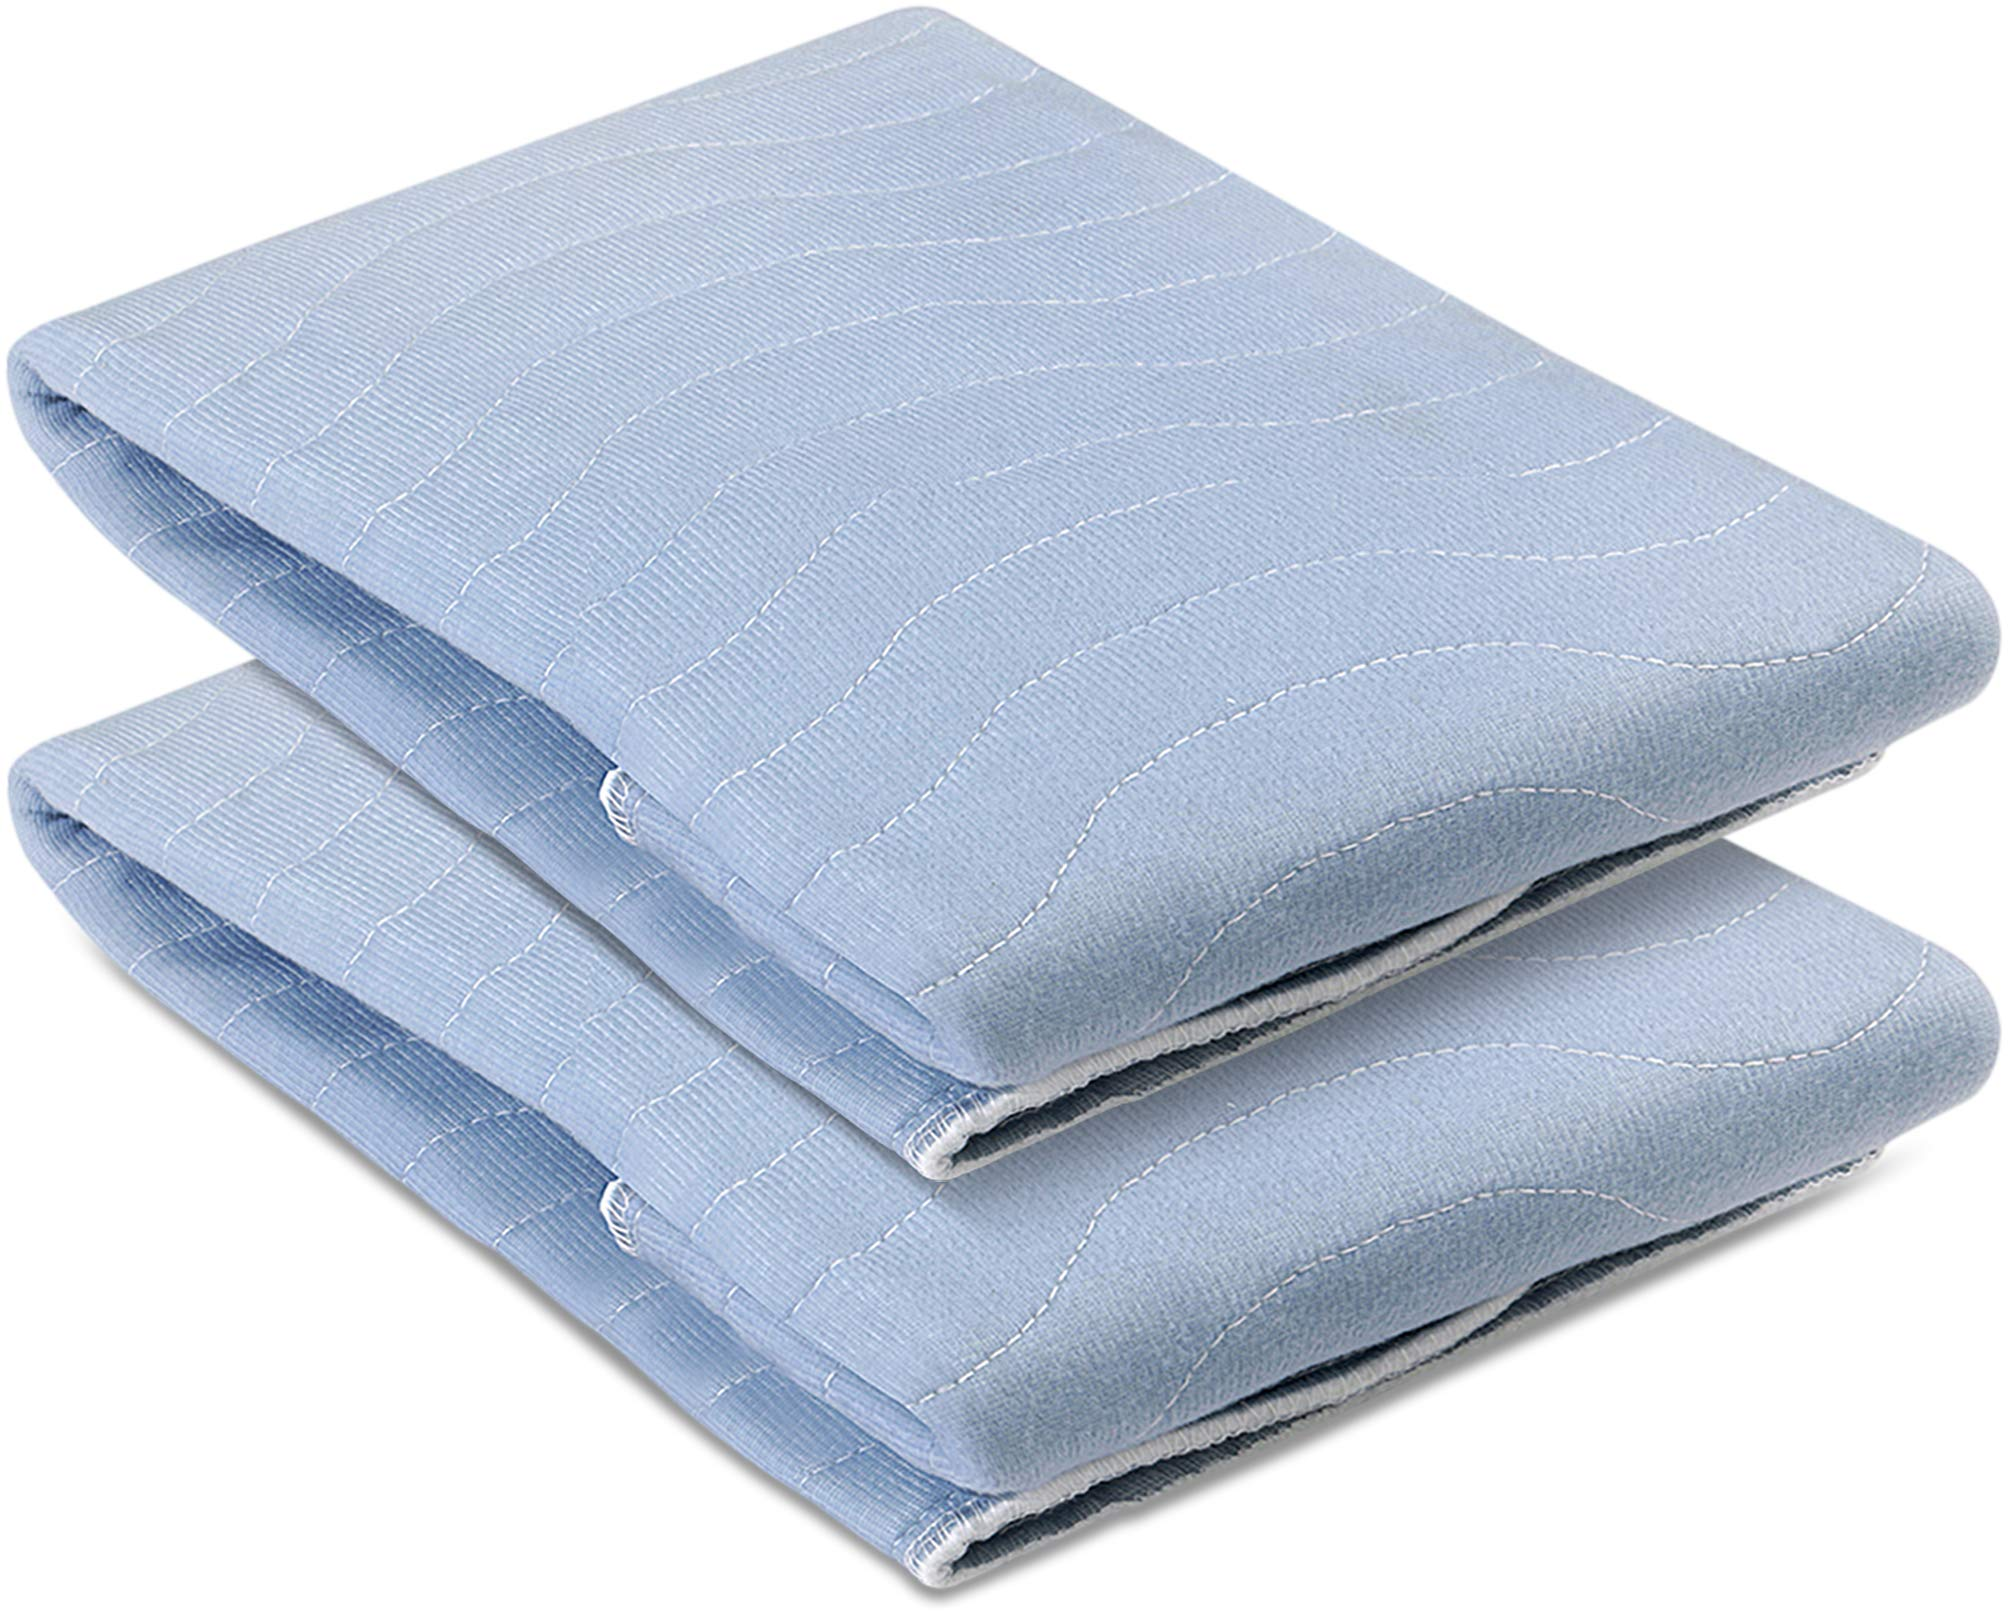 Utopia Bedding Sheet Protector Underpad- Highly Absorbent and Washable (18 x 24 inches)